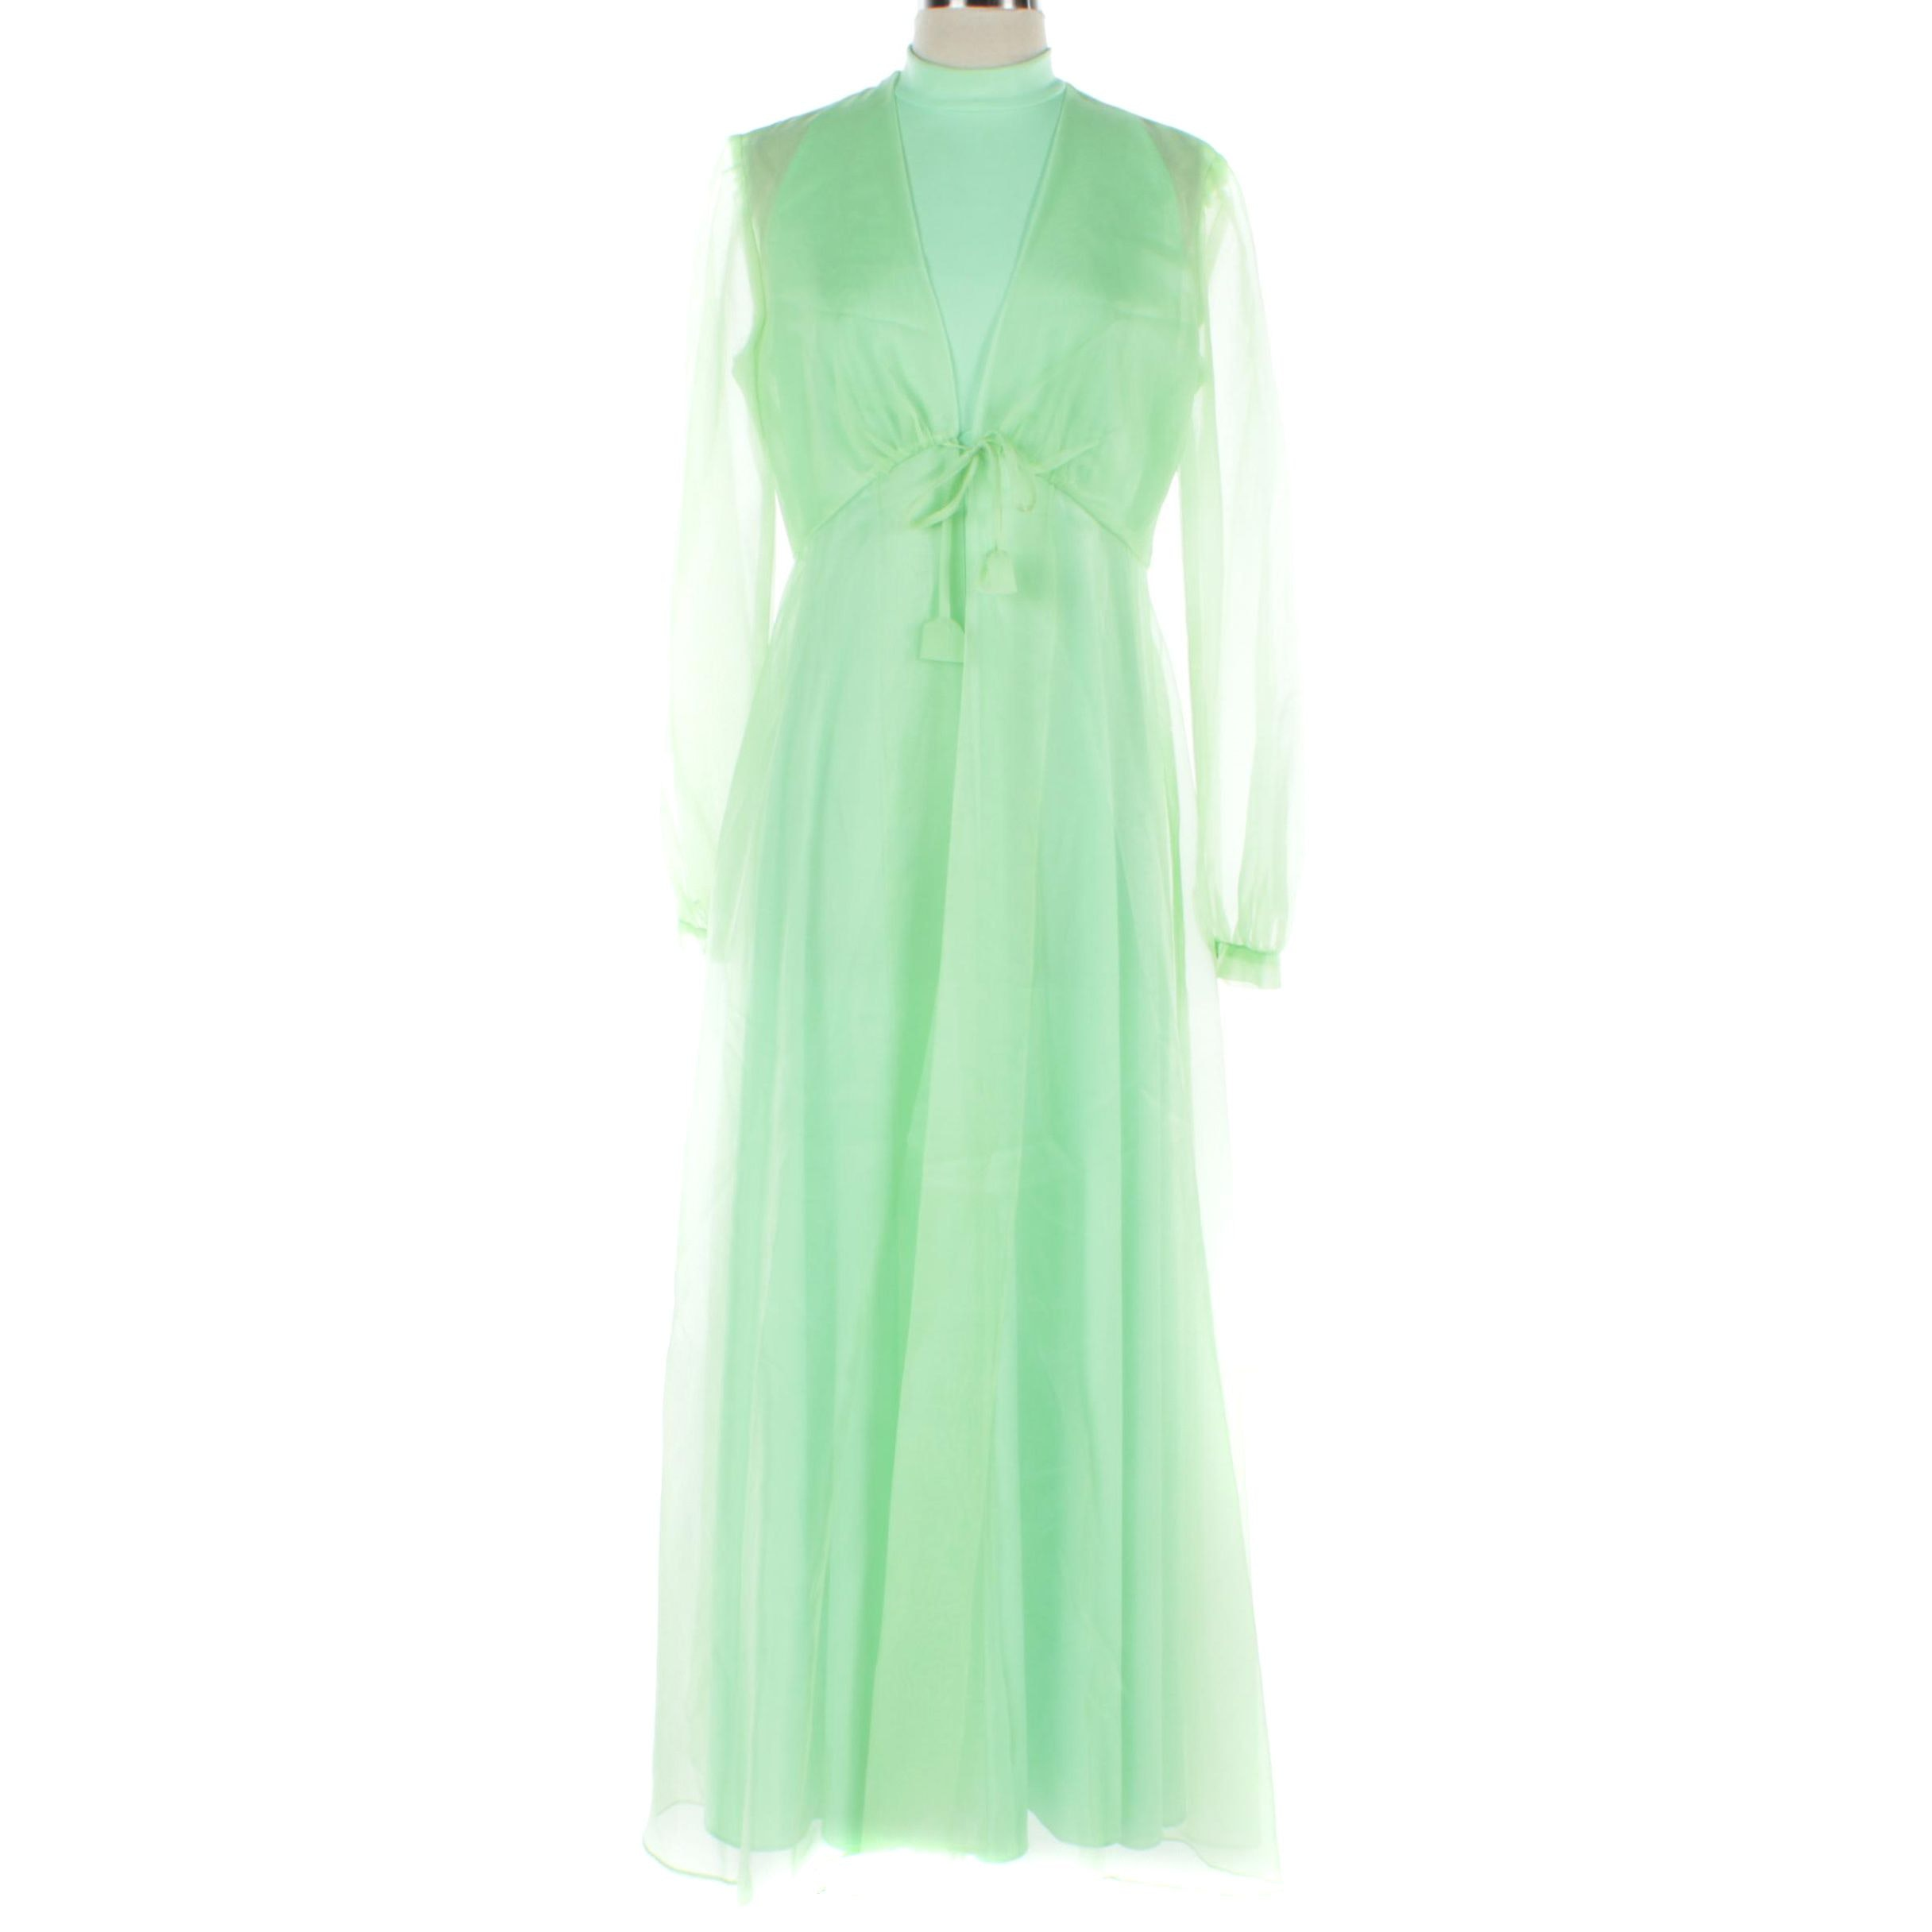 Circa 1960s Green Sleeveless Nylon Gown with Sheer Organdy Long-Sleeve Jacket